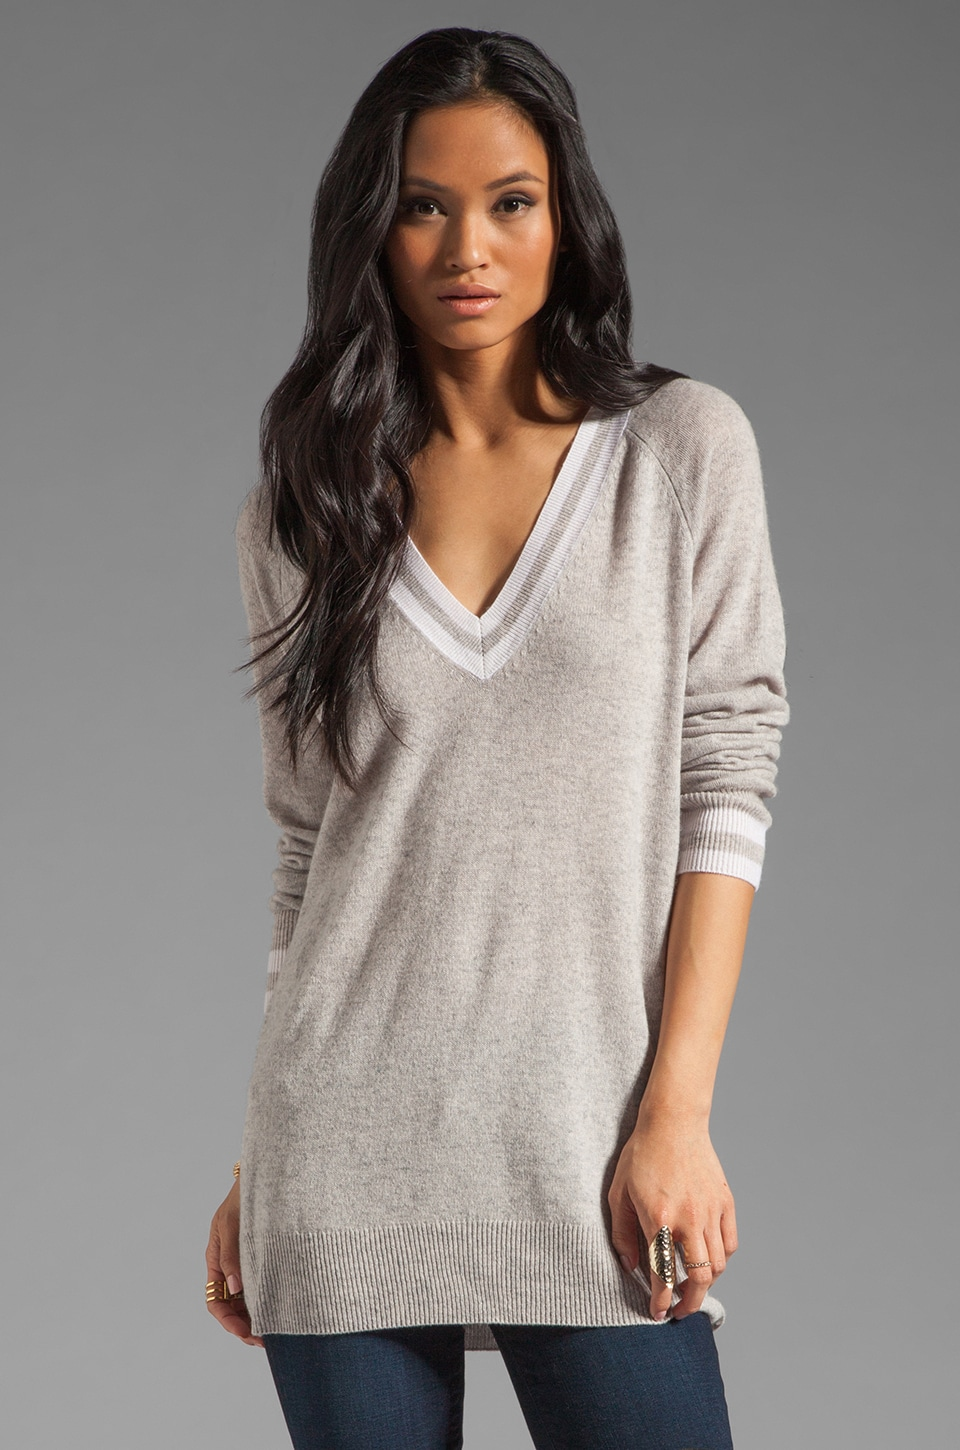 Equipment Asher V Neck Colorblock Sweater in Heather Grey